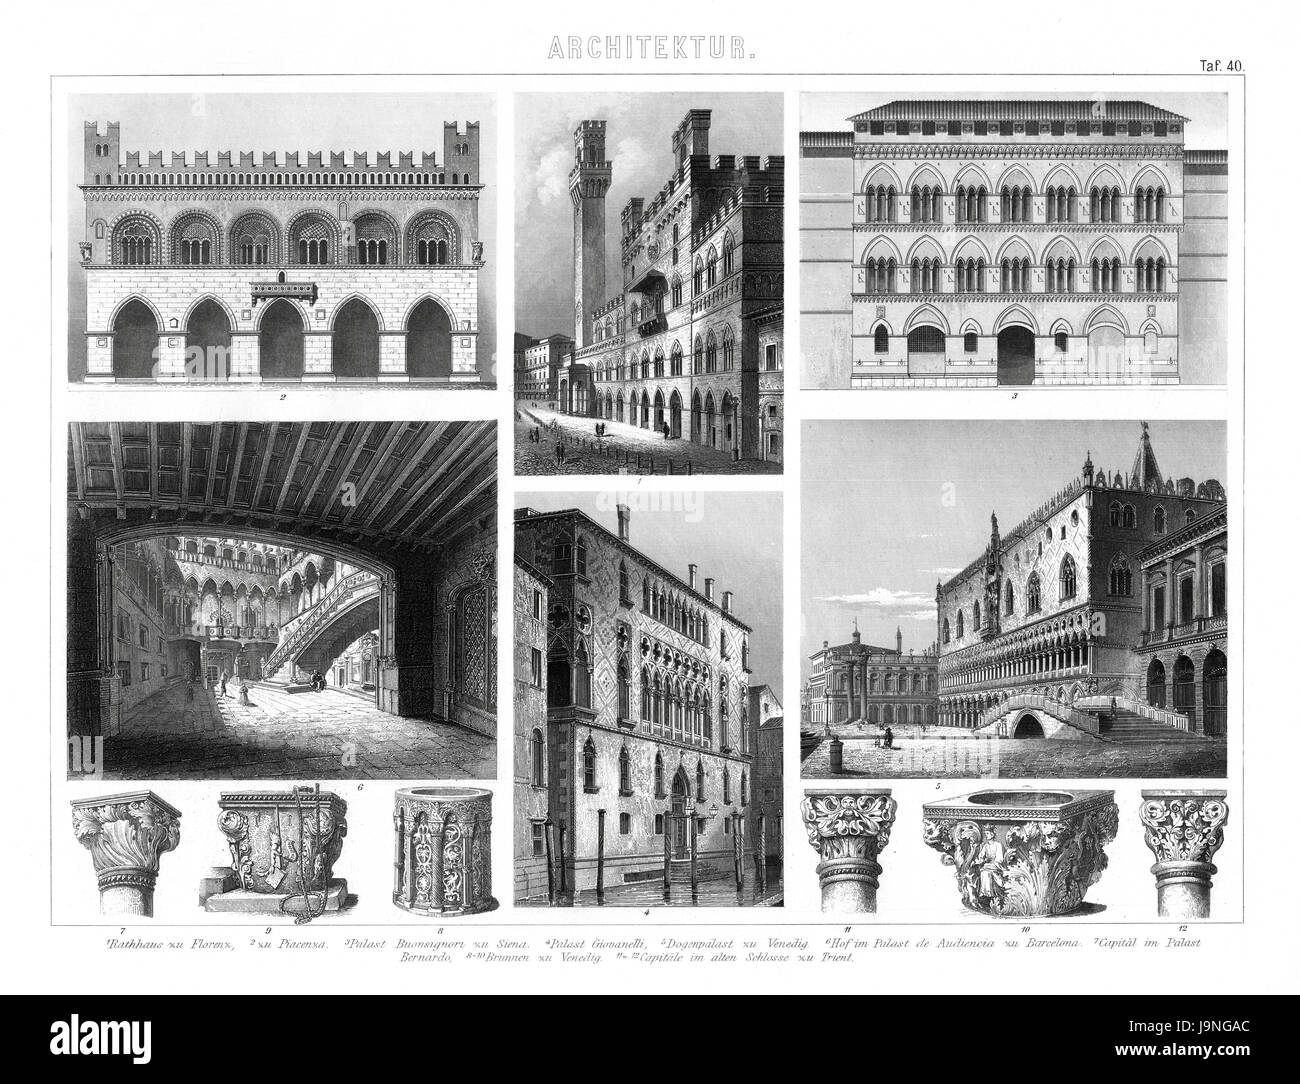 1874 Antique German Encyclopedia Atlas Print Italian Gothic Architecture Of Florence Venice And Other From The Early Renaissance Periods